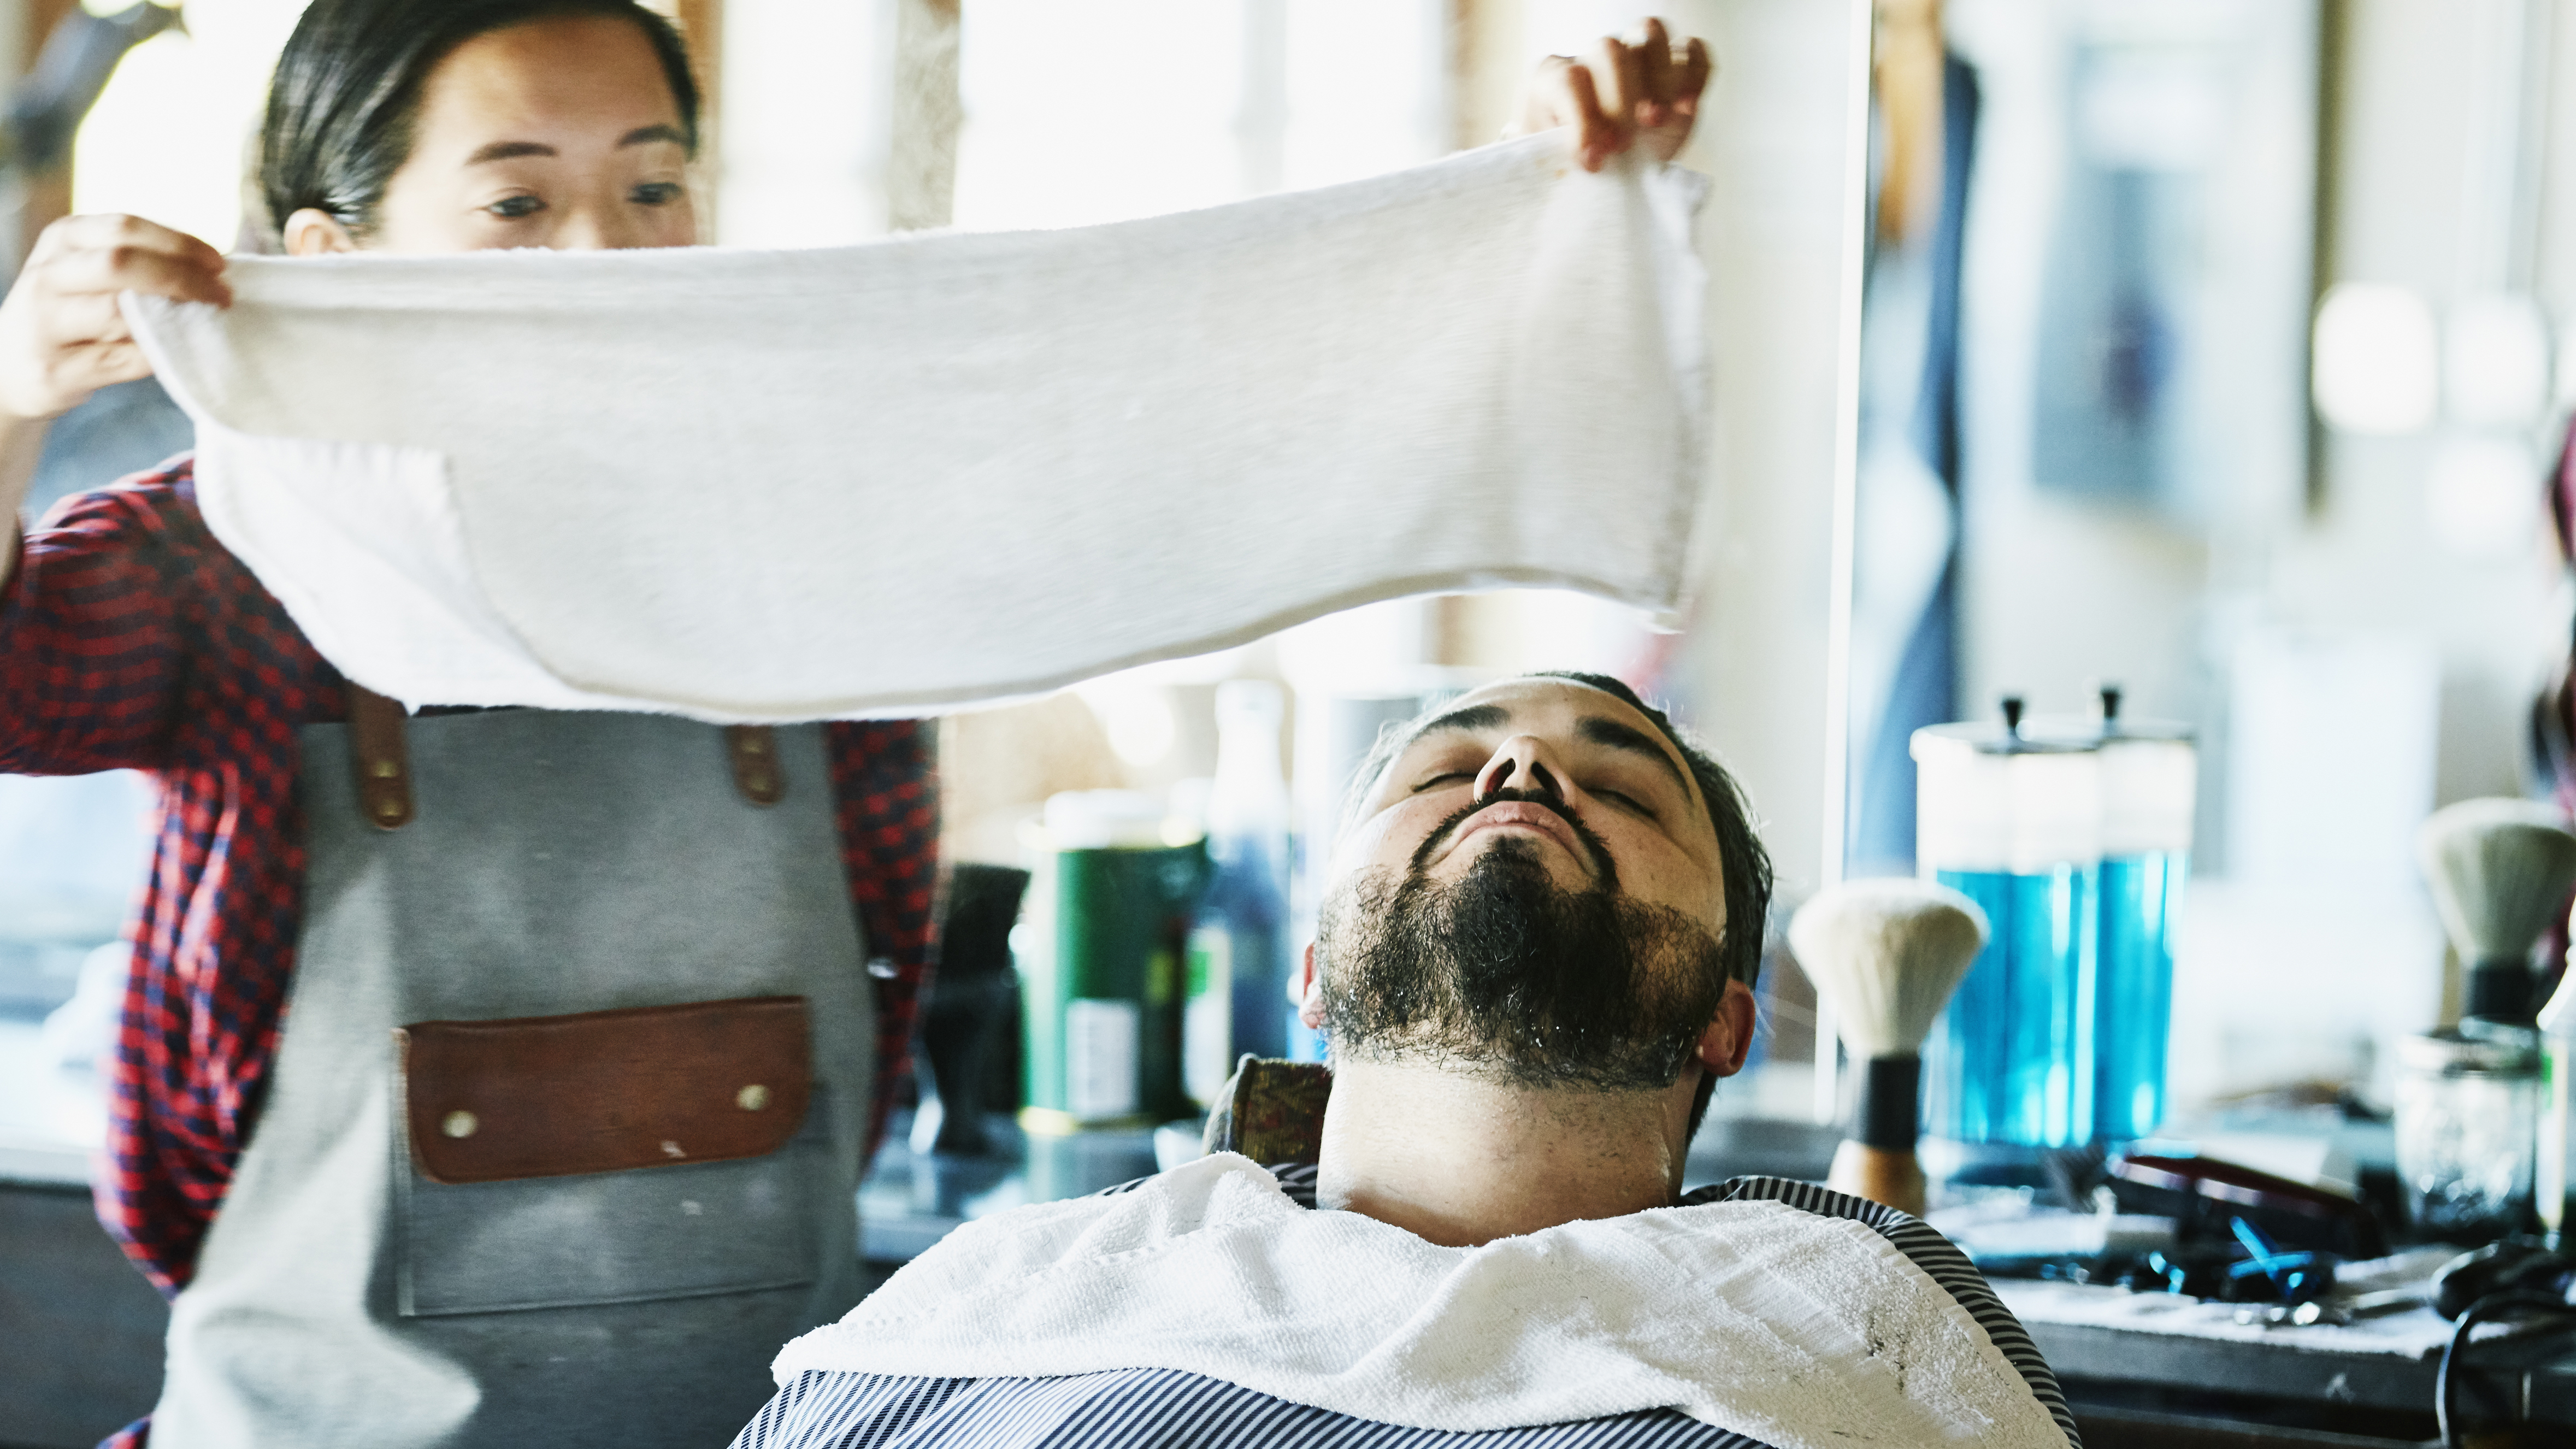 The Reason Your Barber Puts a Hot Towel on Your Face